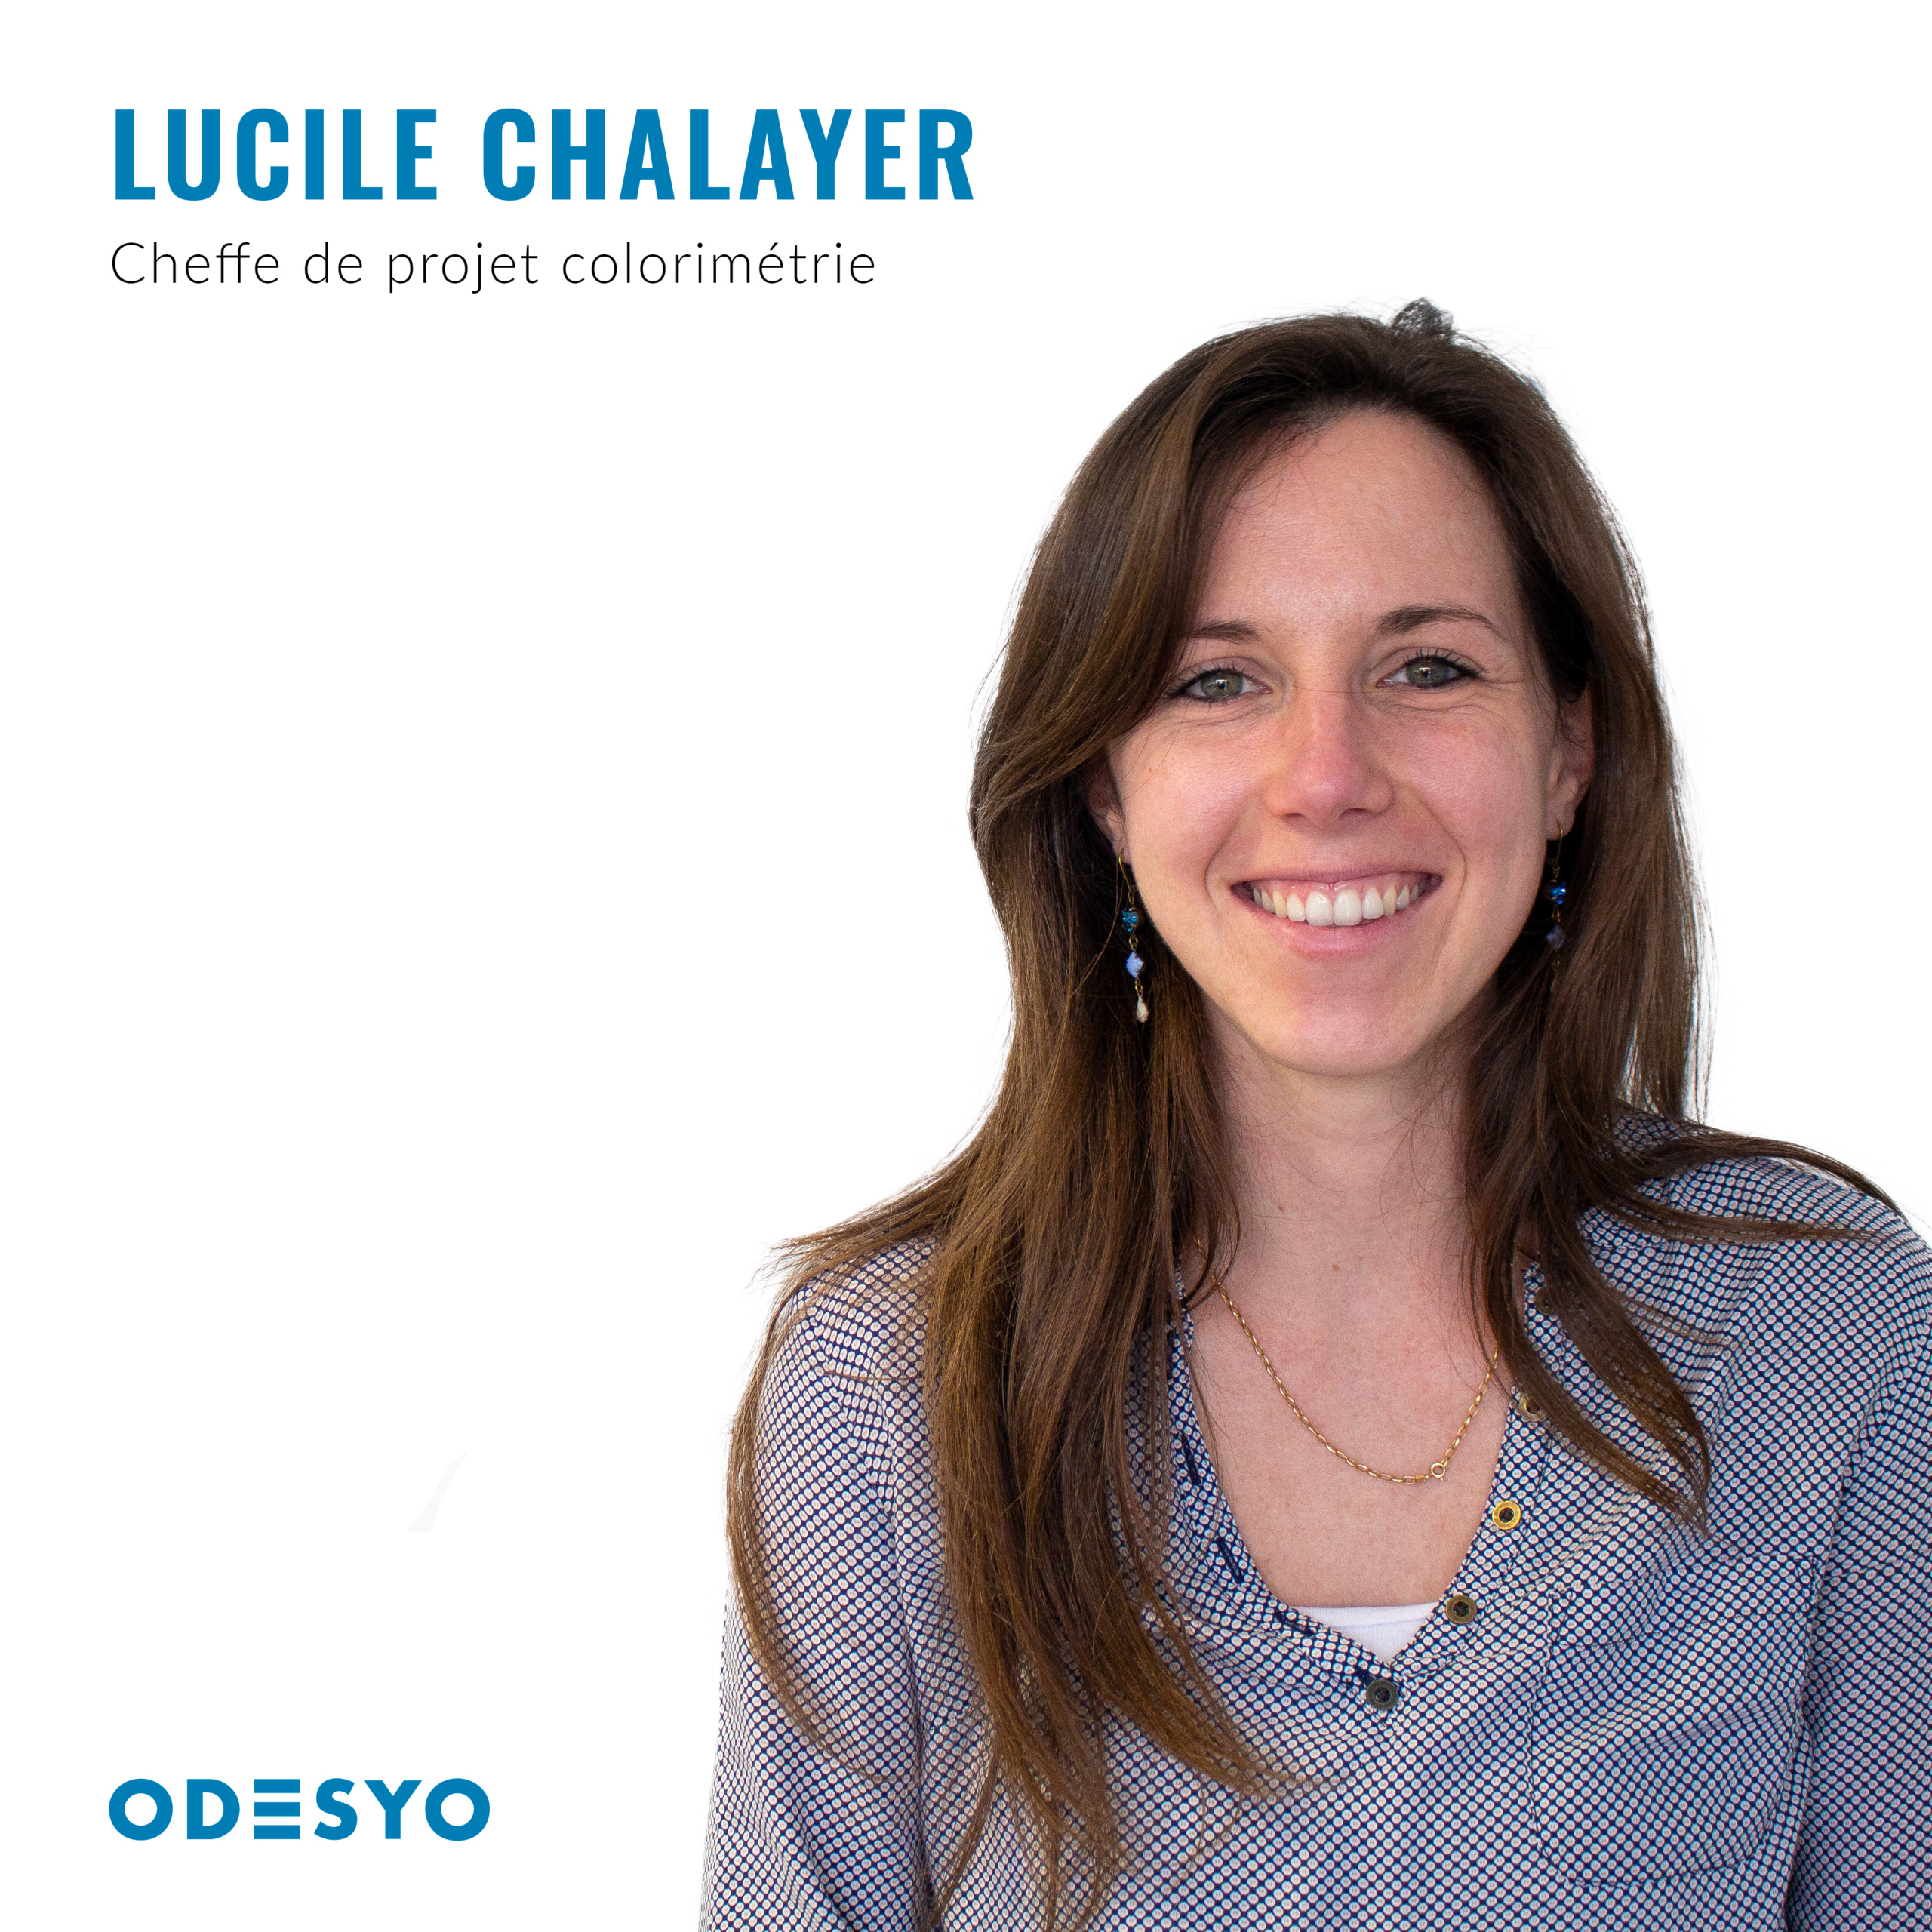 Lucile Chalayer